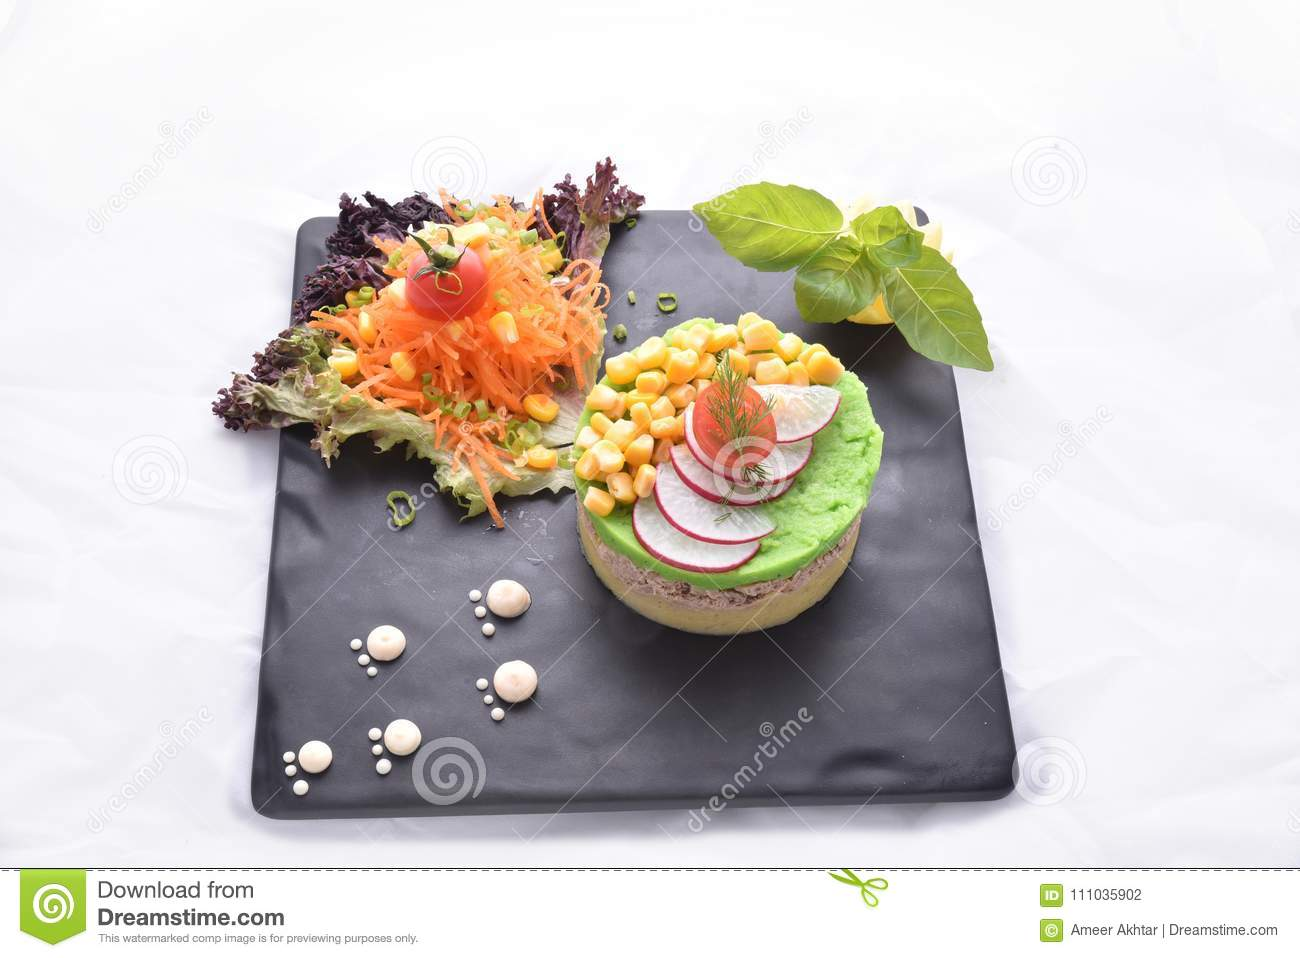 Tuna Fish With Mashed Potatoes & Salads- Protein Meal Stock